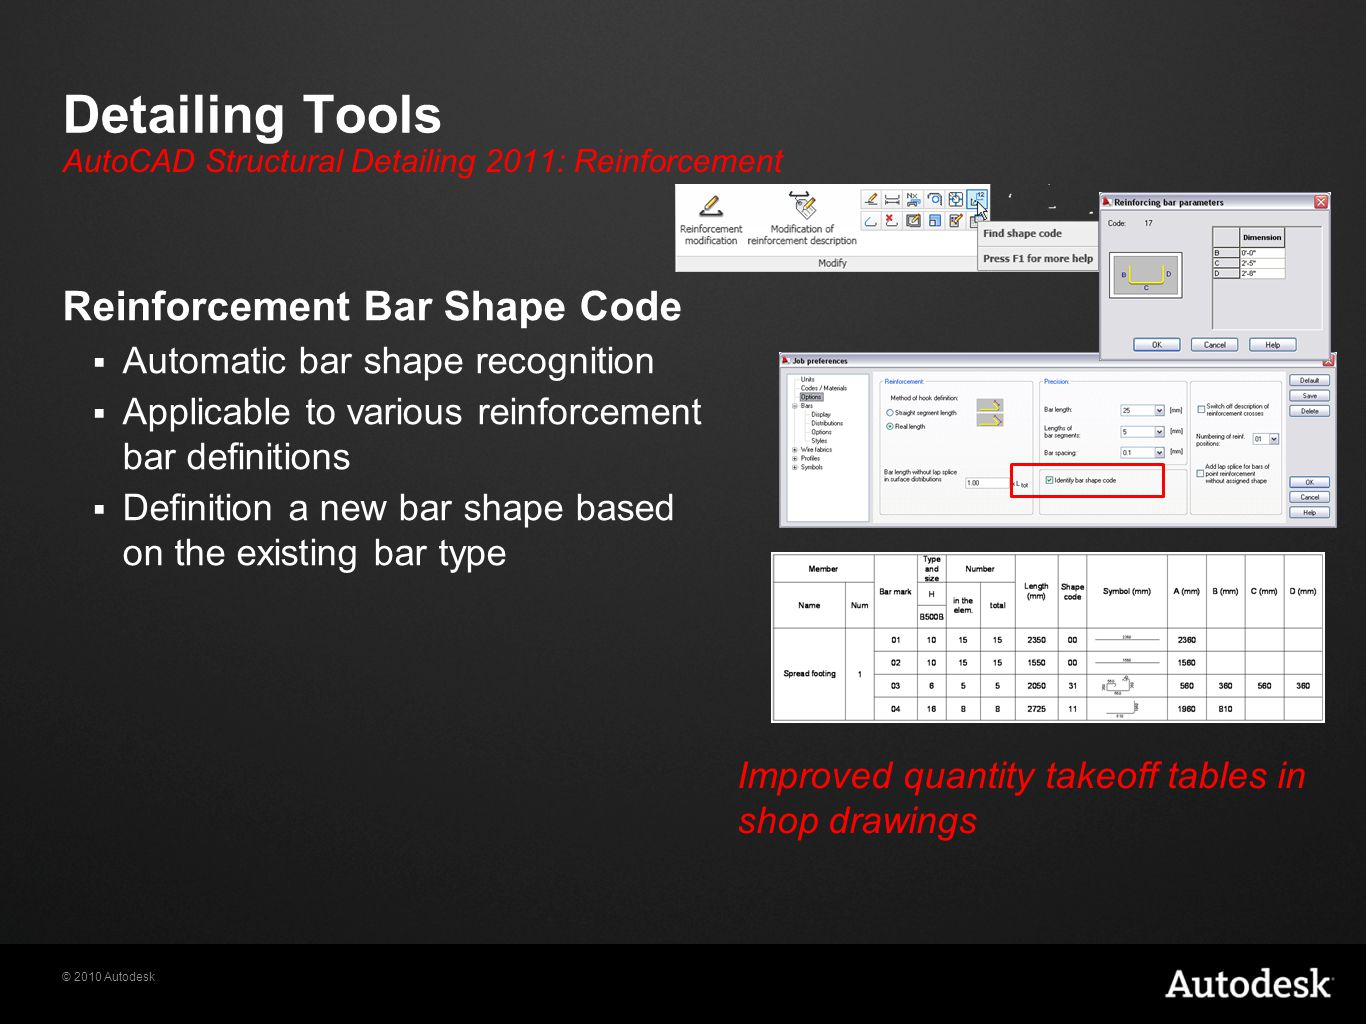 © 2010 Autodesk Detailing Tools Reinforcement Bar Shape Code  Automatic bar shape recognition  Applicable to various reinforcement bar definitions  Definition a new bar shape based on the existing bar type Improved quantity takeoff tables in shop drawings AutoCAD Structural Detailing 2011: Reinforcement